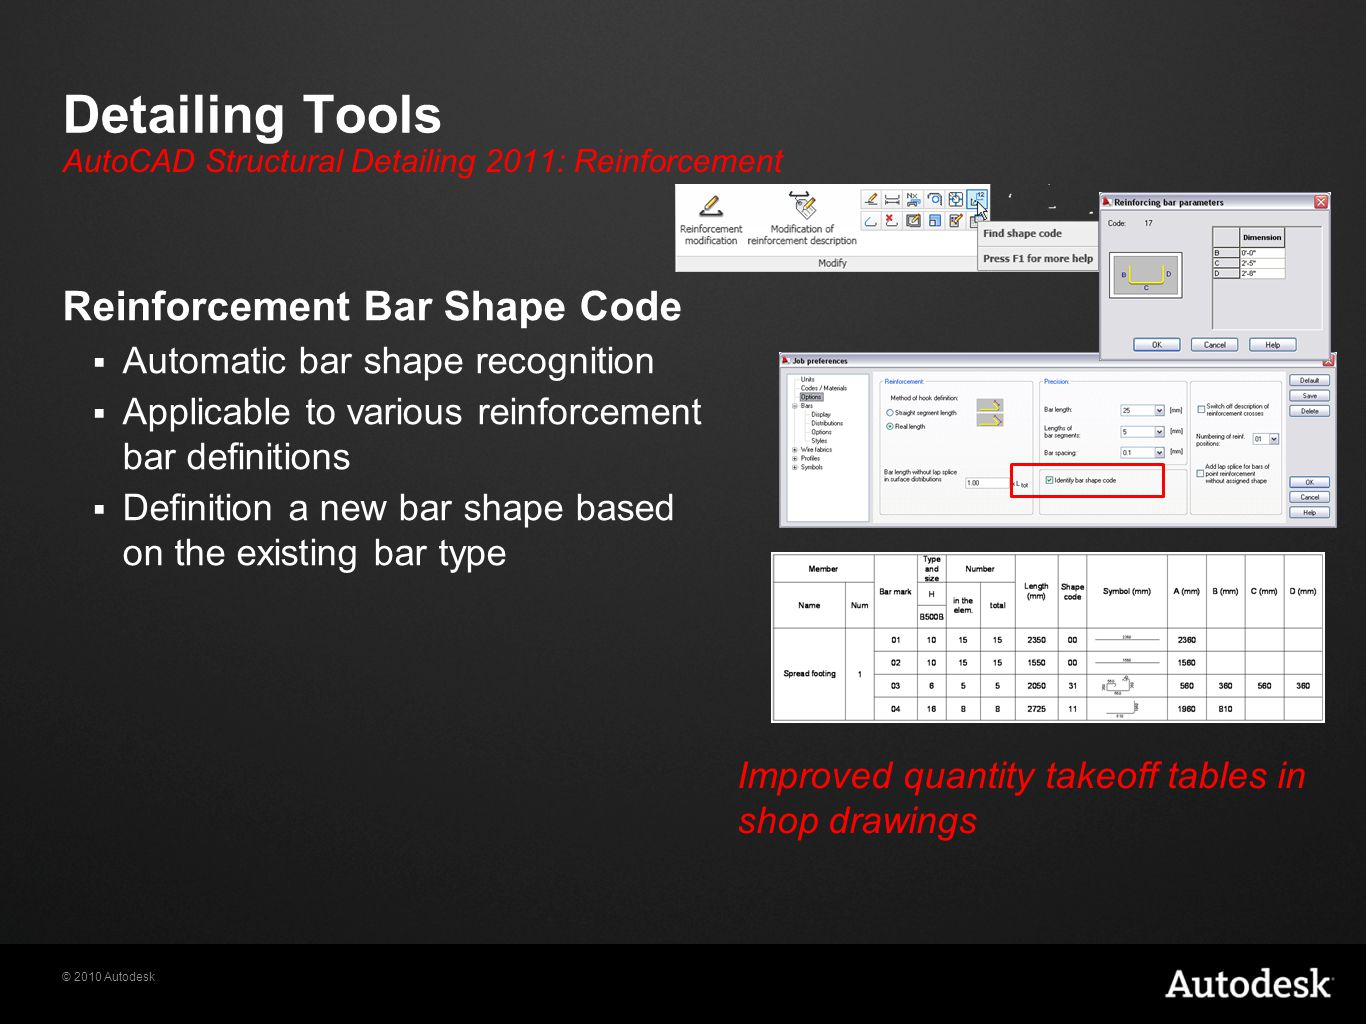 © 2010 Autodesk Detailing Tools Reinforcement Bar Shape Code  Automatic bar shape recognition  Applicable to various reinforcement bar definitions  Definition a new bar shape based on the existing bar type Improved quantity takeoff tables in shop drawings AutoCAD Structural Detailing 2011: Reinforcement